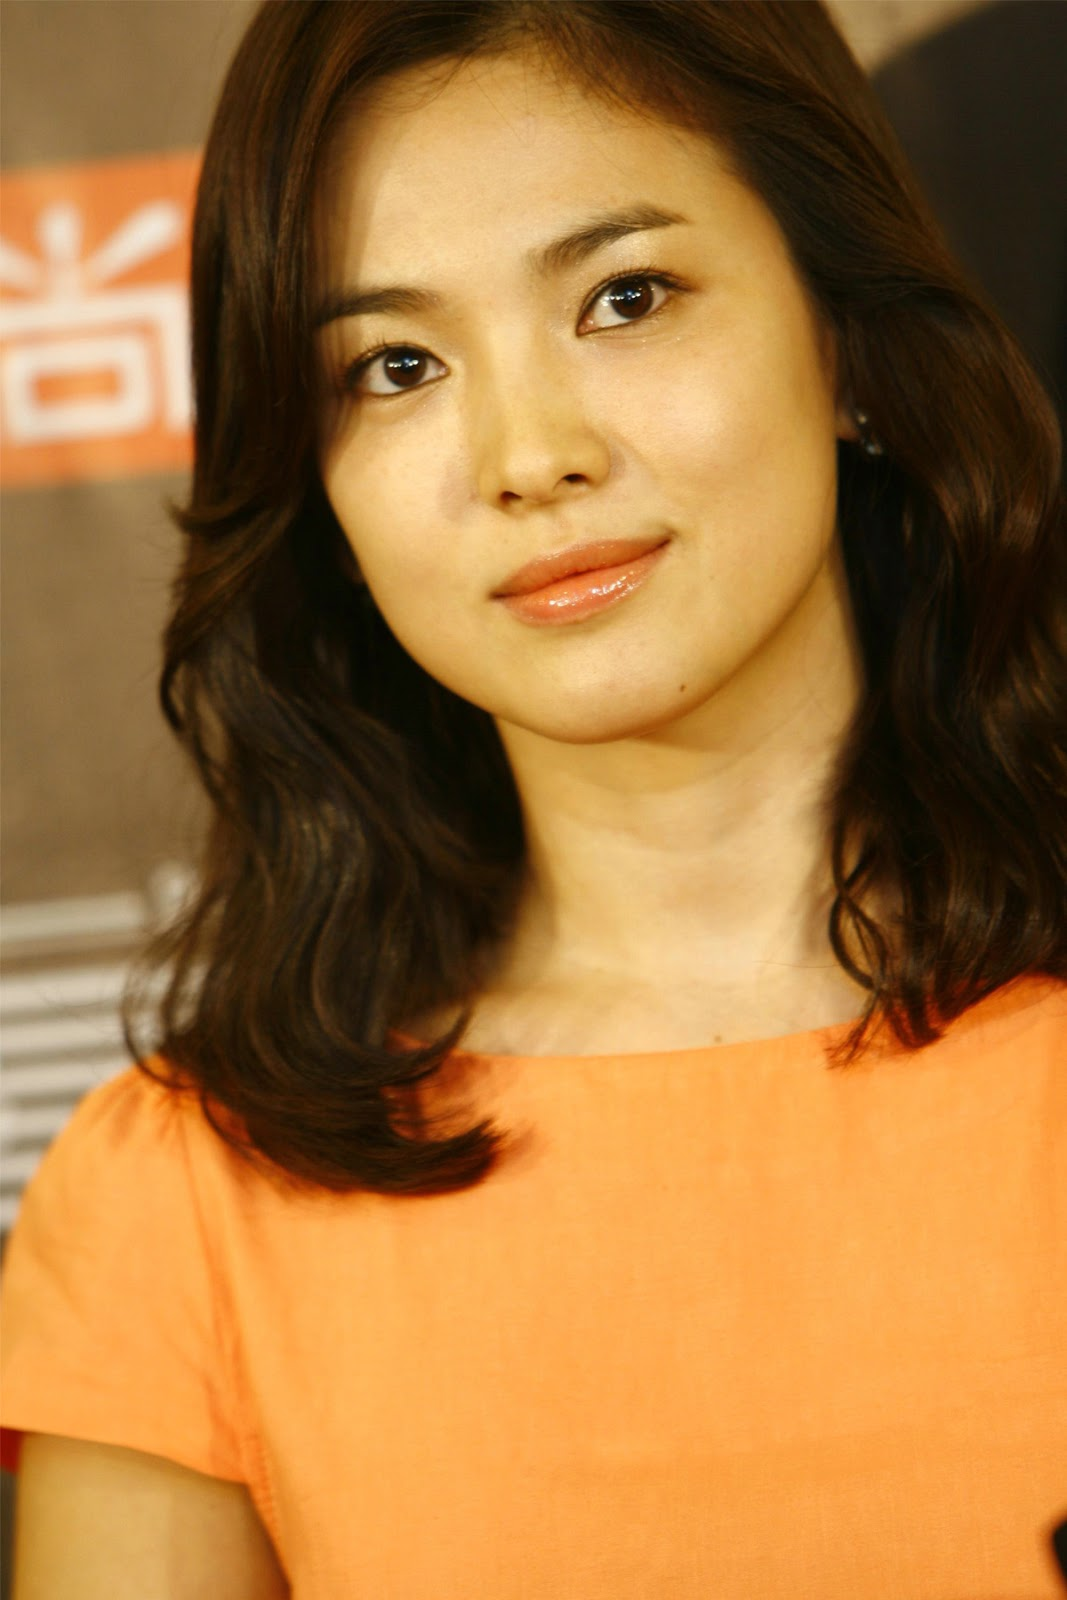 song hye kyo images - photo #37